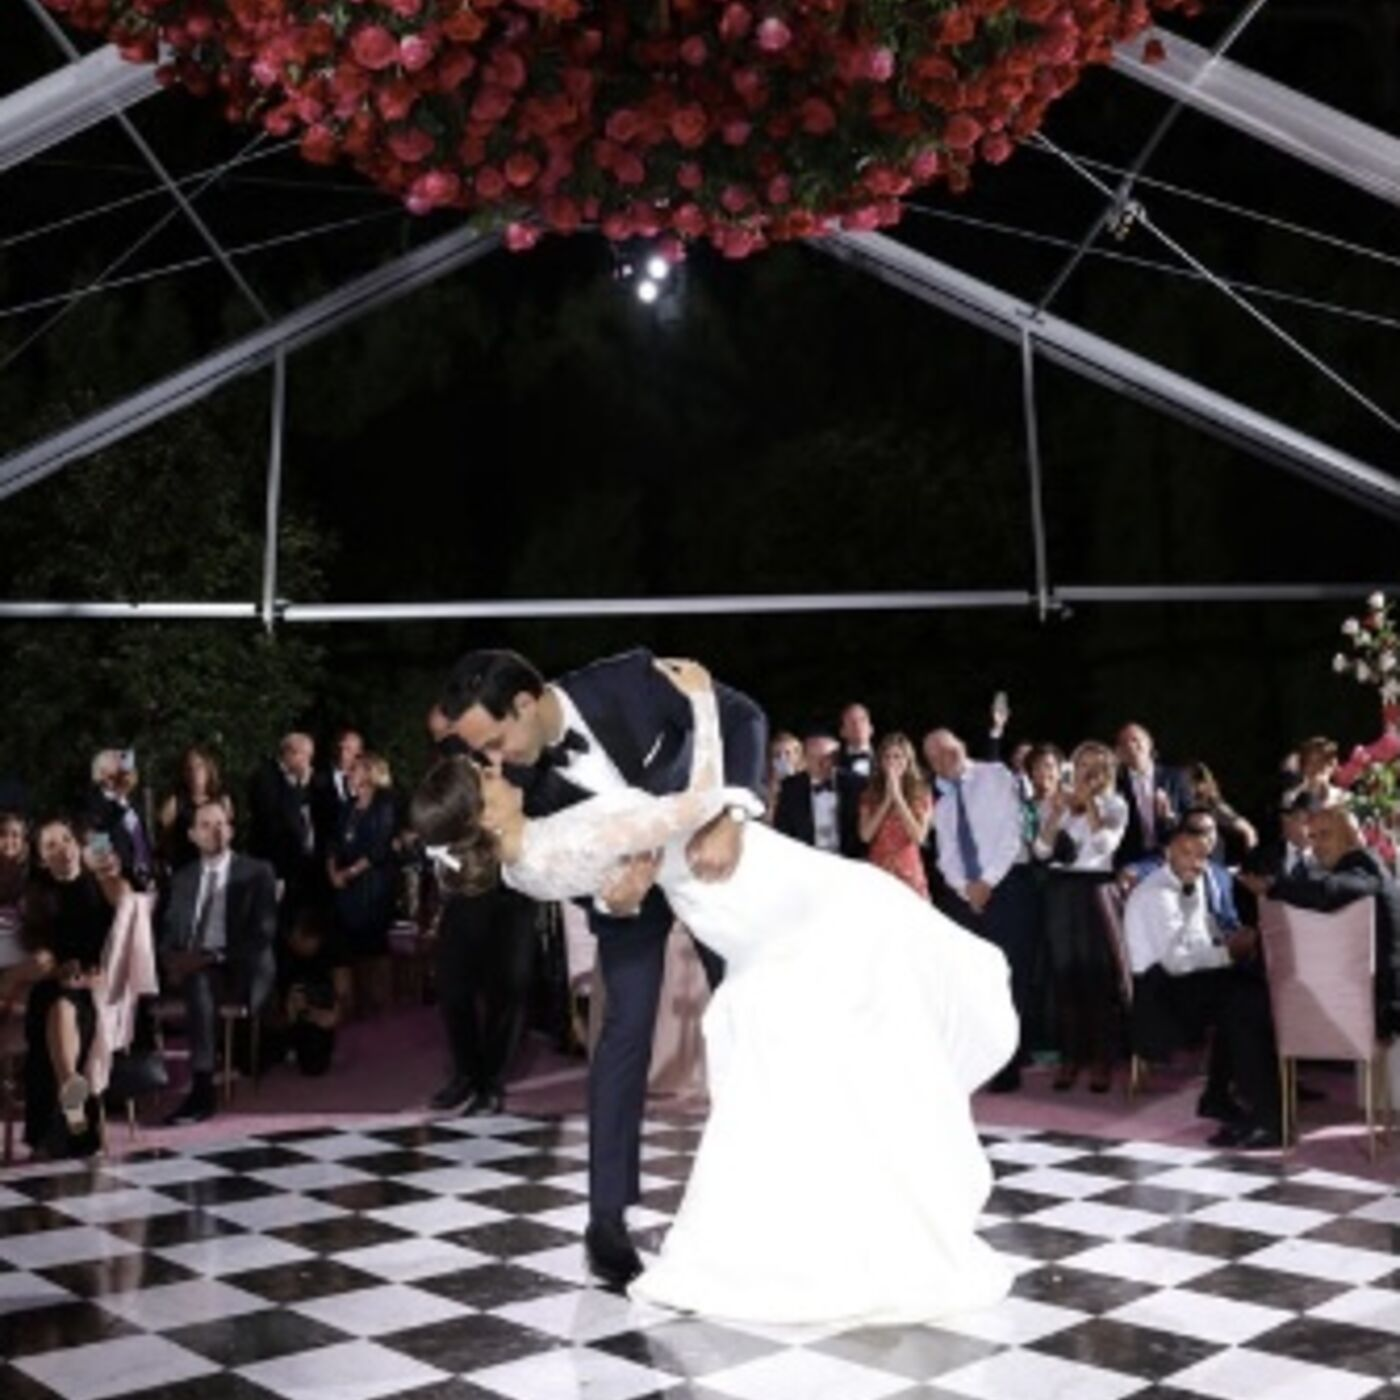 Elizabeth and Josh - A Summer Wedding for the Ages